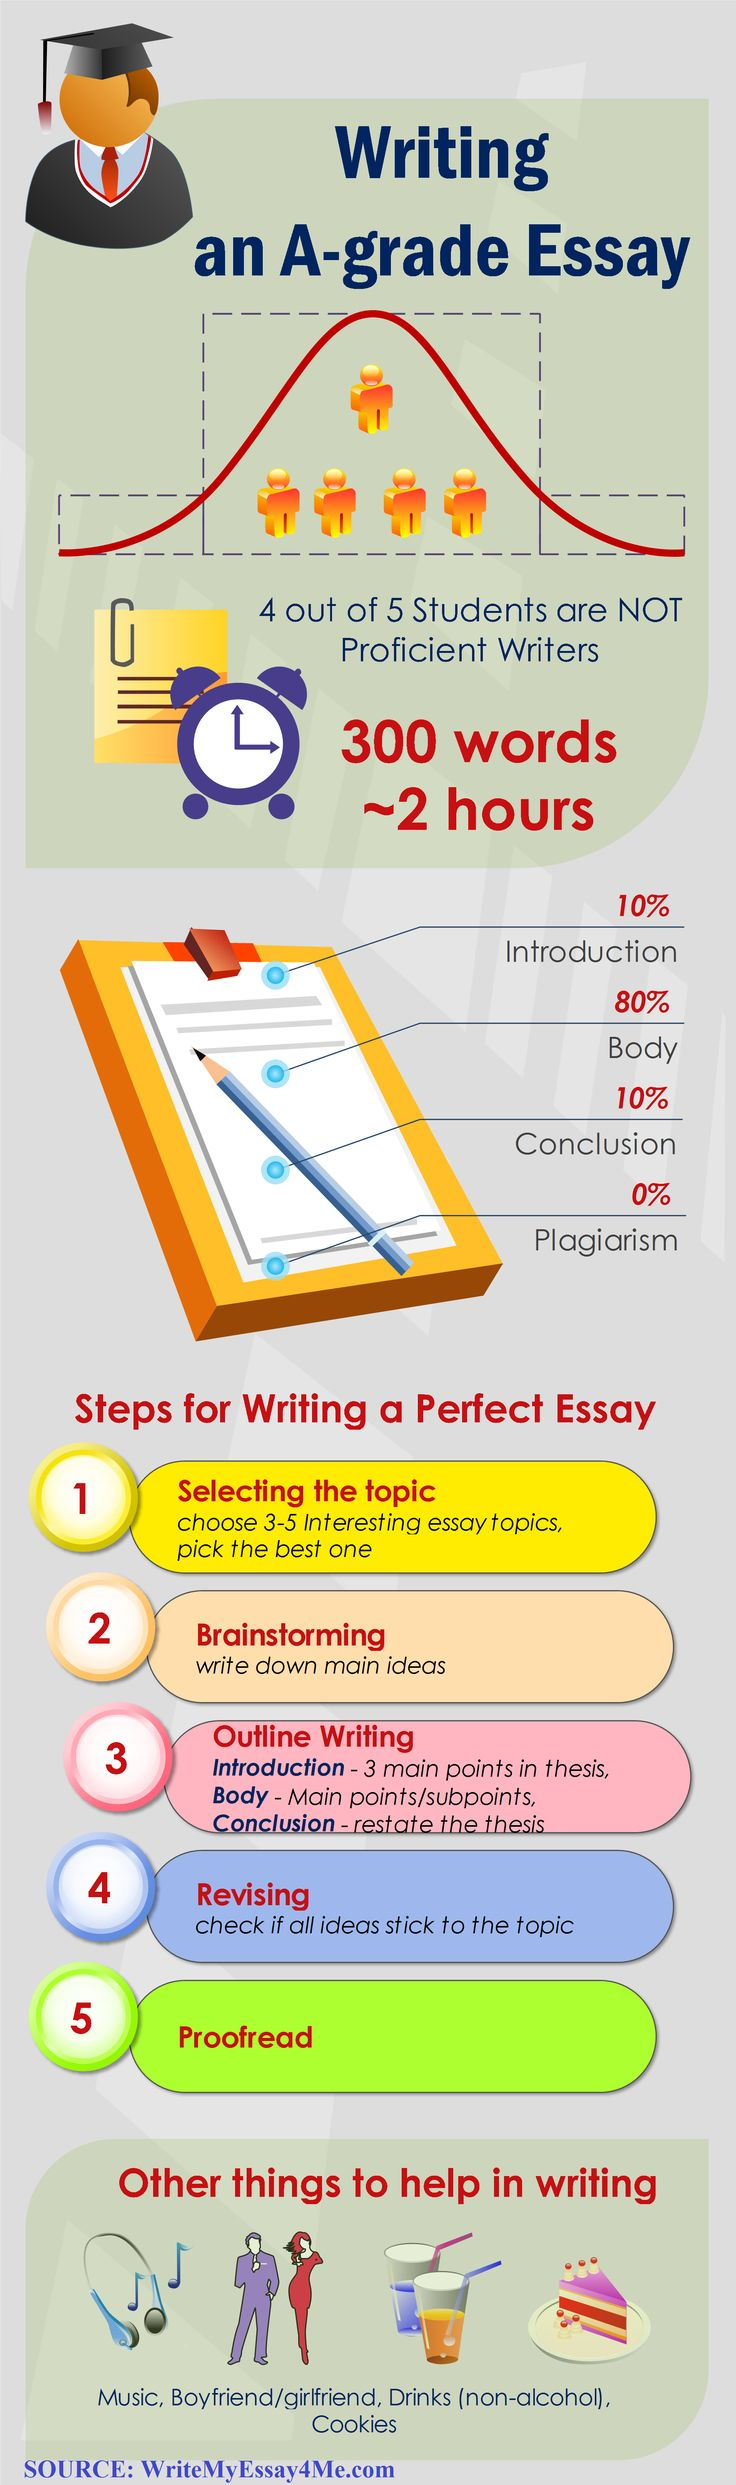 Writing an essay based on common knowledge?